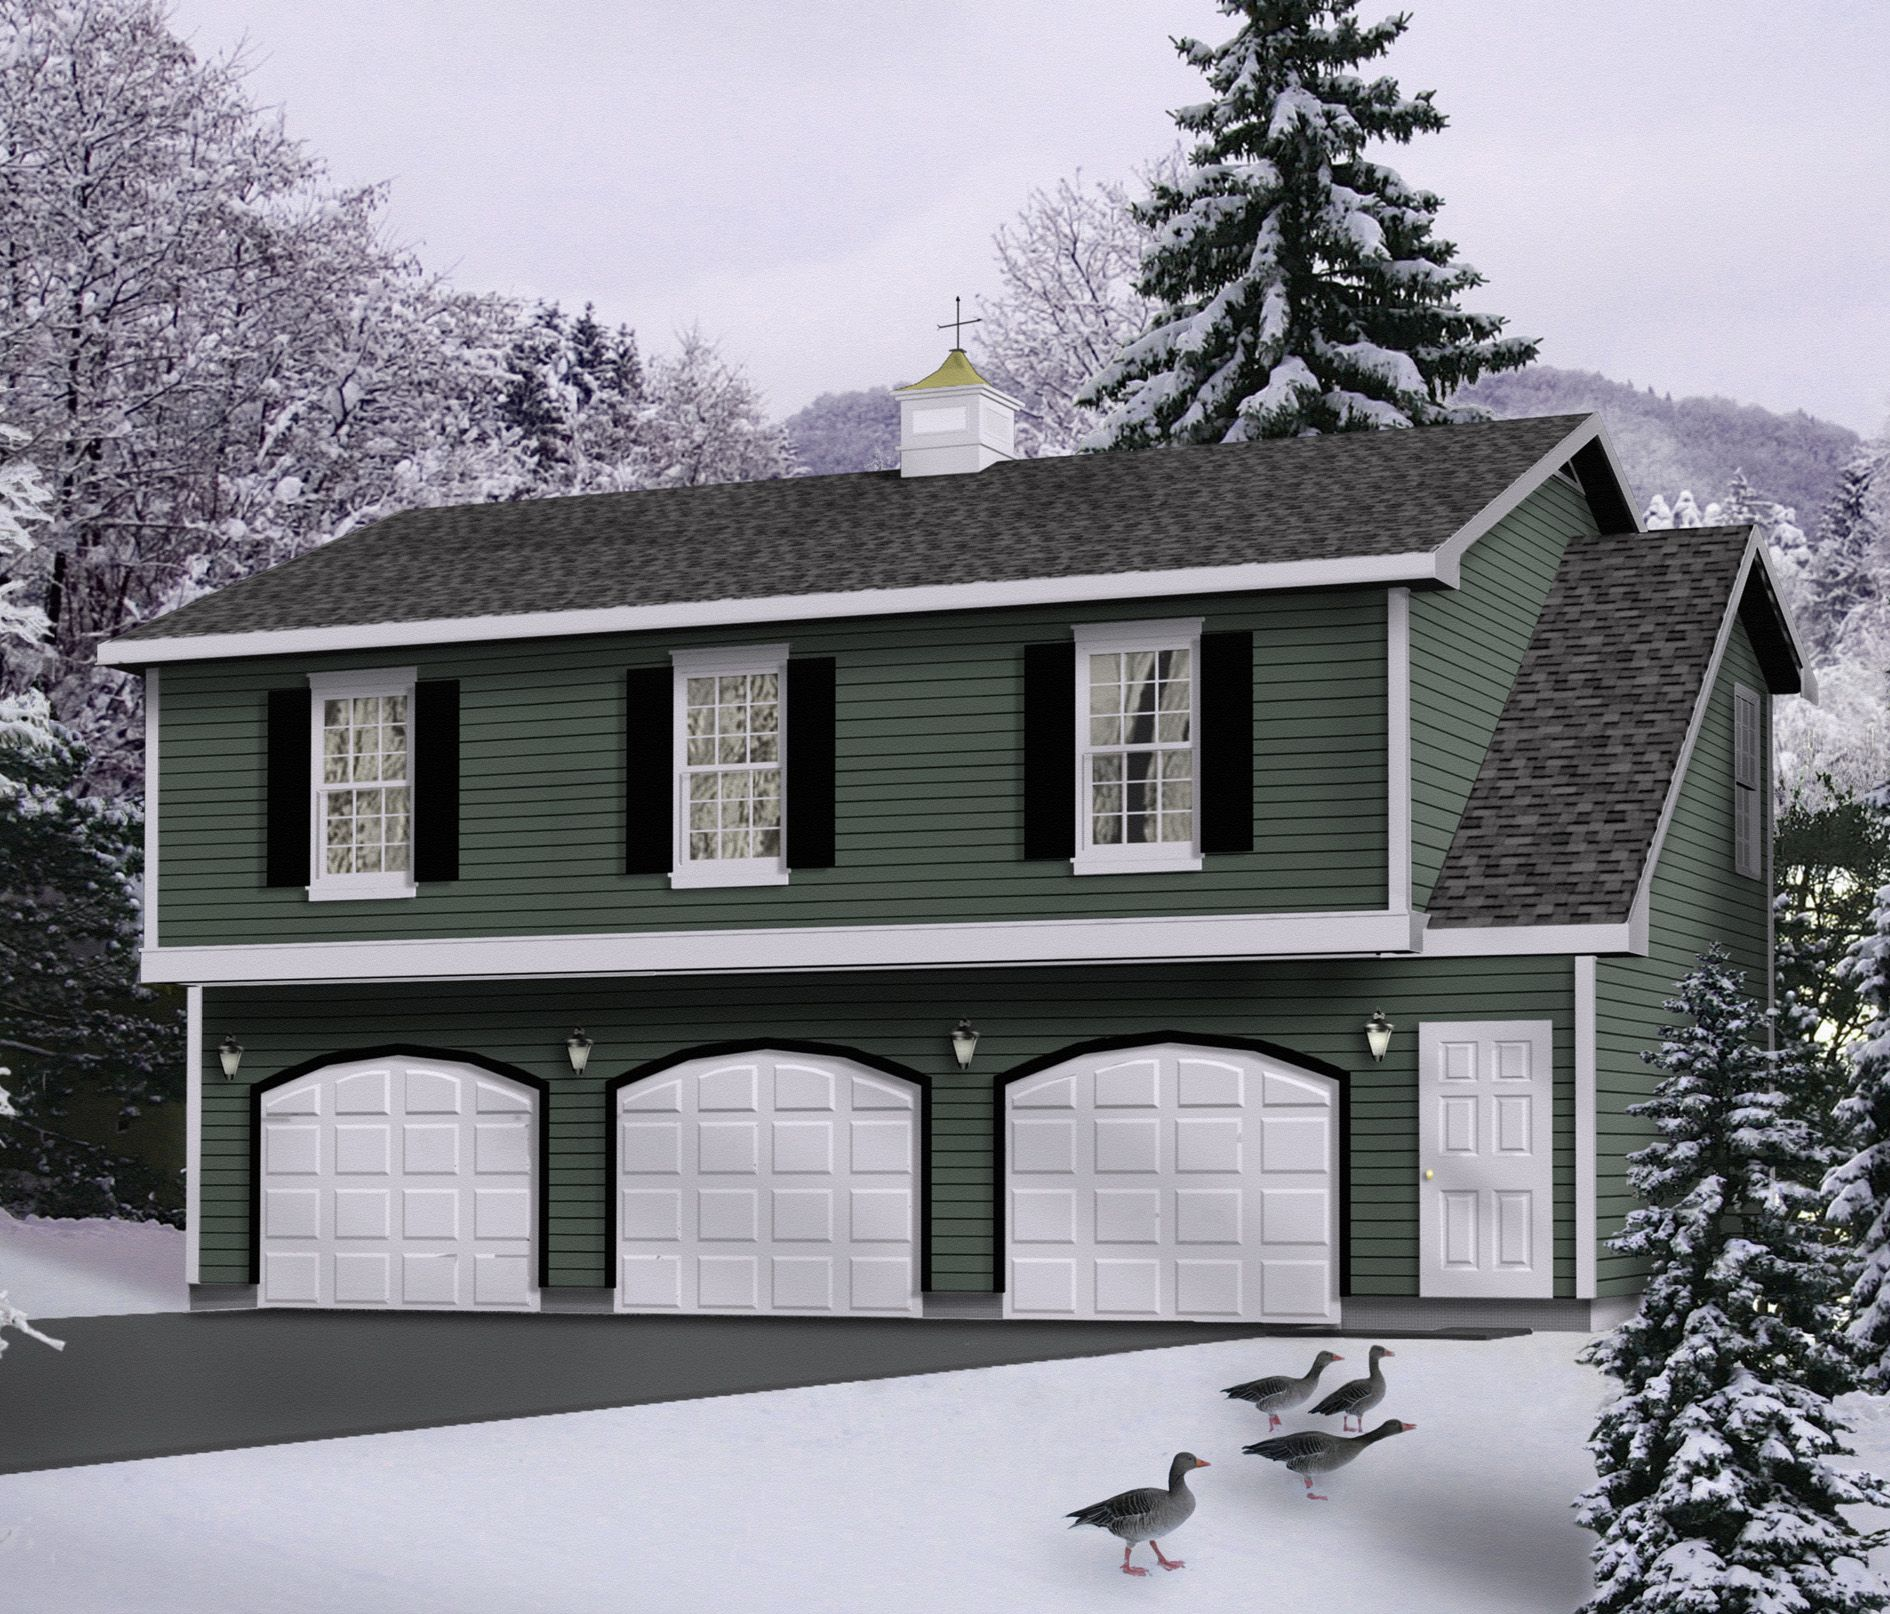 Plan 2236sl affordable garage apartment garage for Affordable garage plans